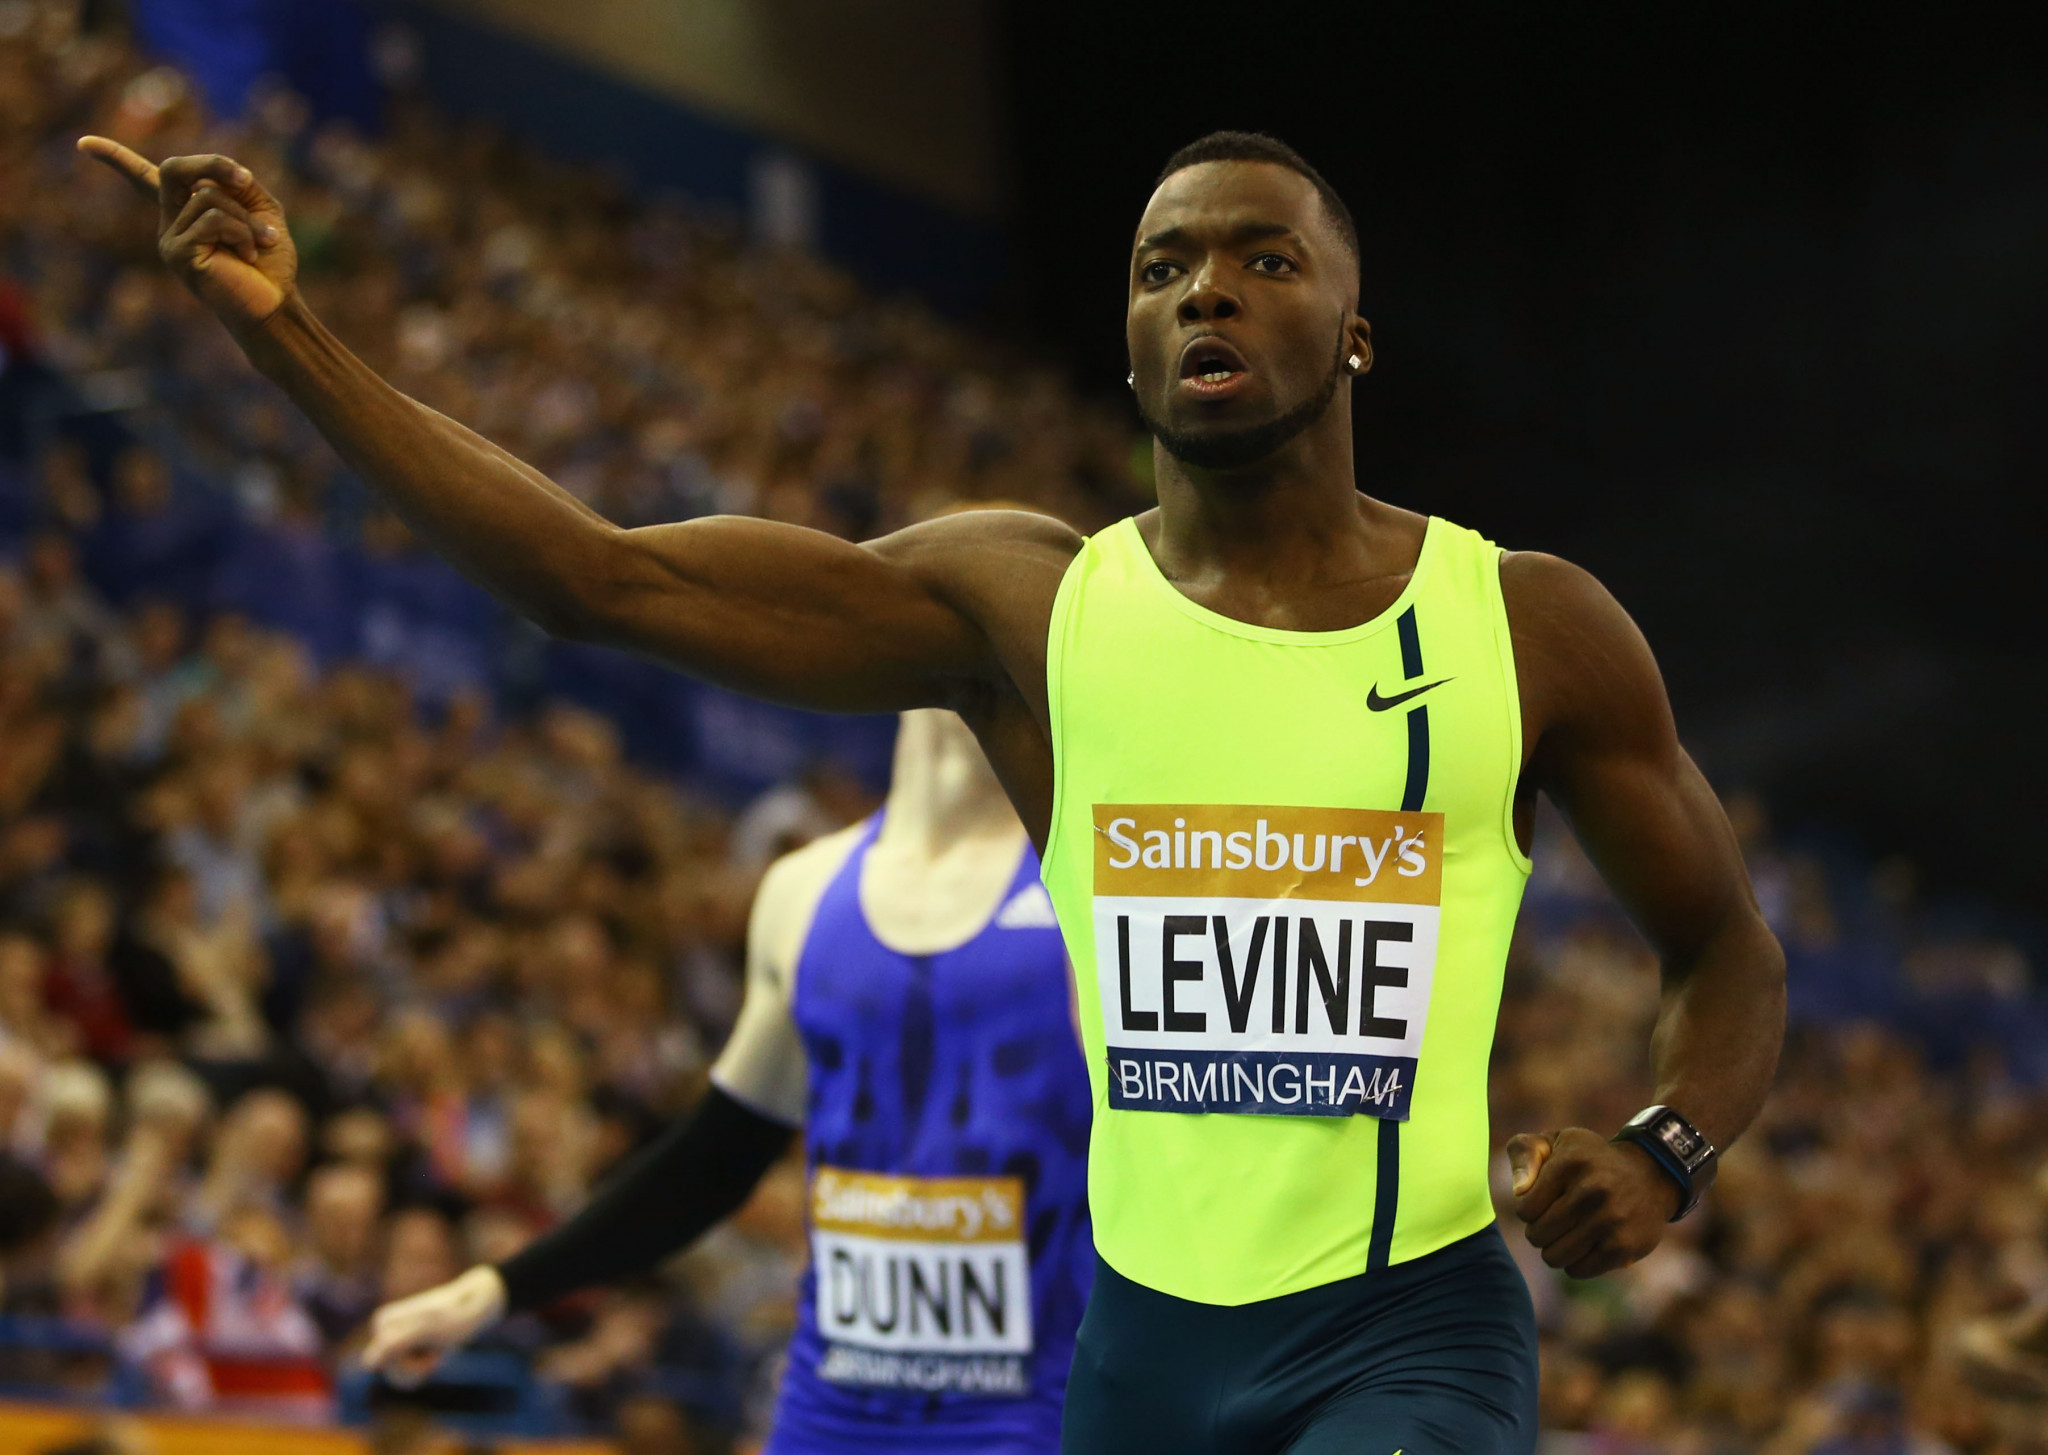 British sprinter Levine banned for four-years after positive drugs test